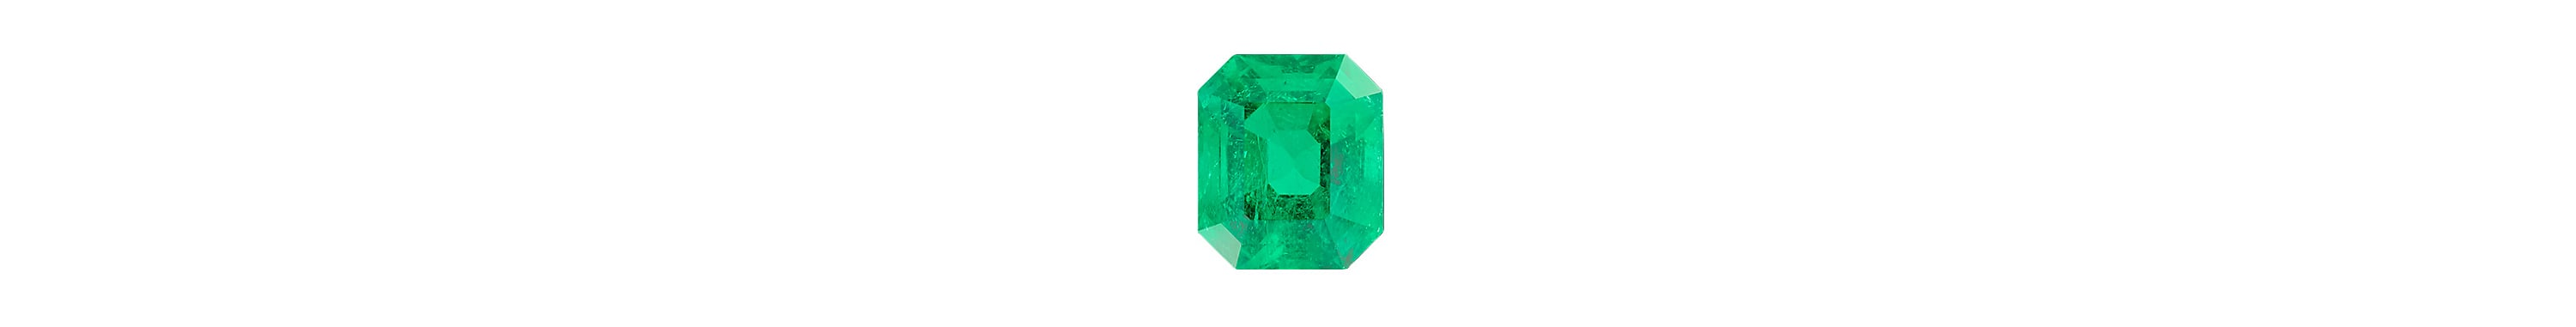 A color photograph shows a close-up shot of a large cushion-cut emerald on a black background.